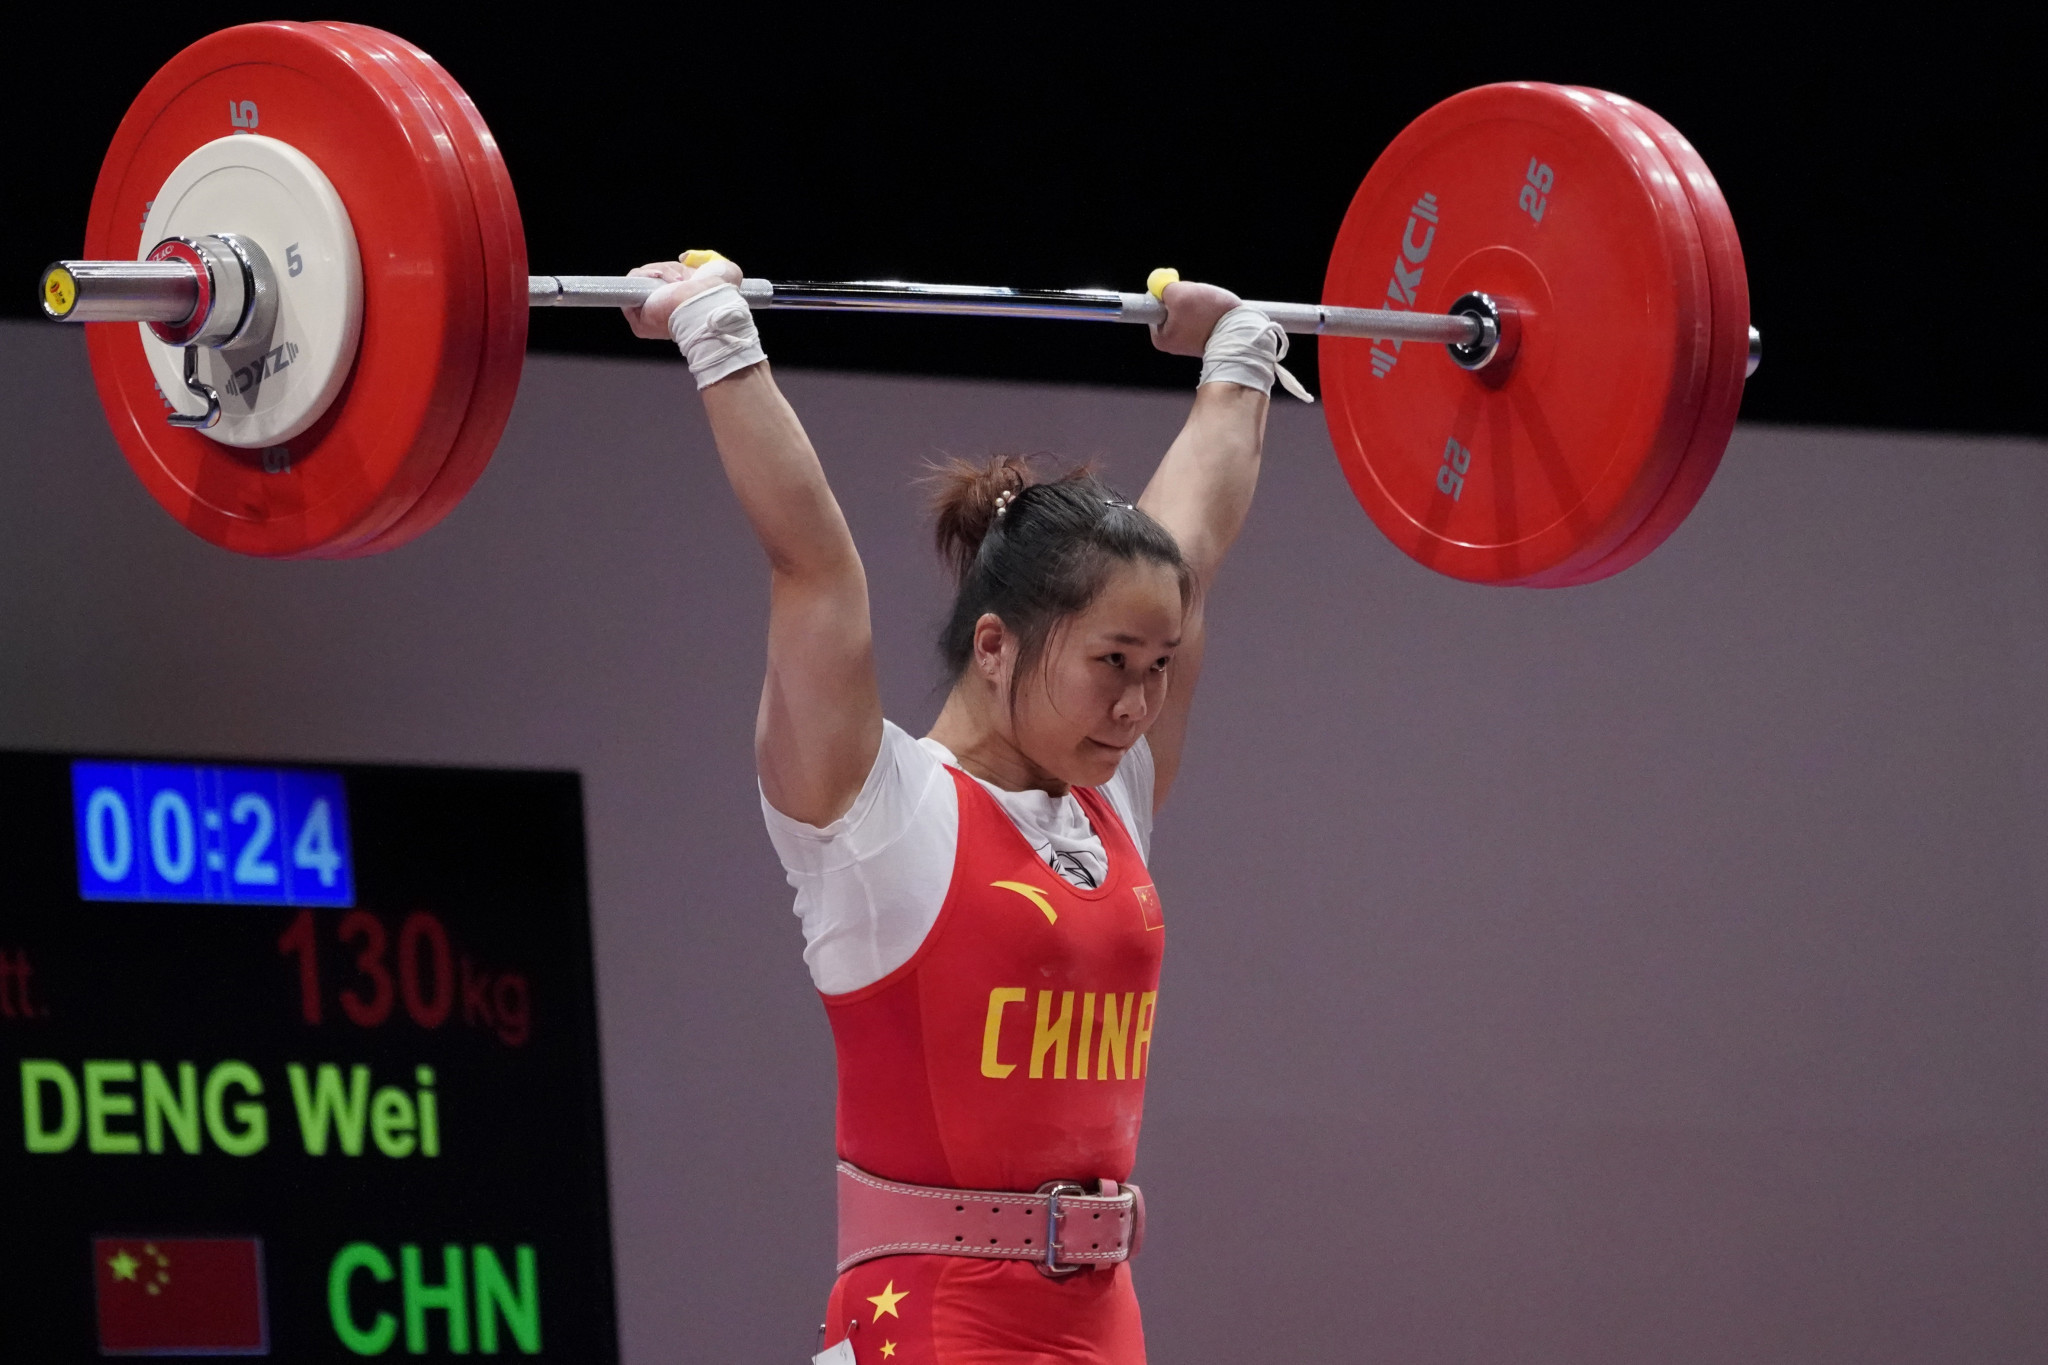 Deng Wei became the first weightlifter, male or female, to pass the 5,000-point mark in Olympic qualification ©Getty Images